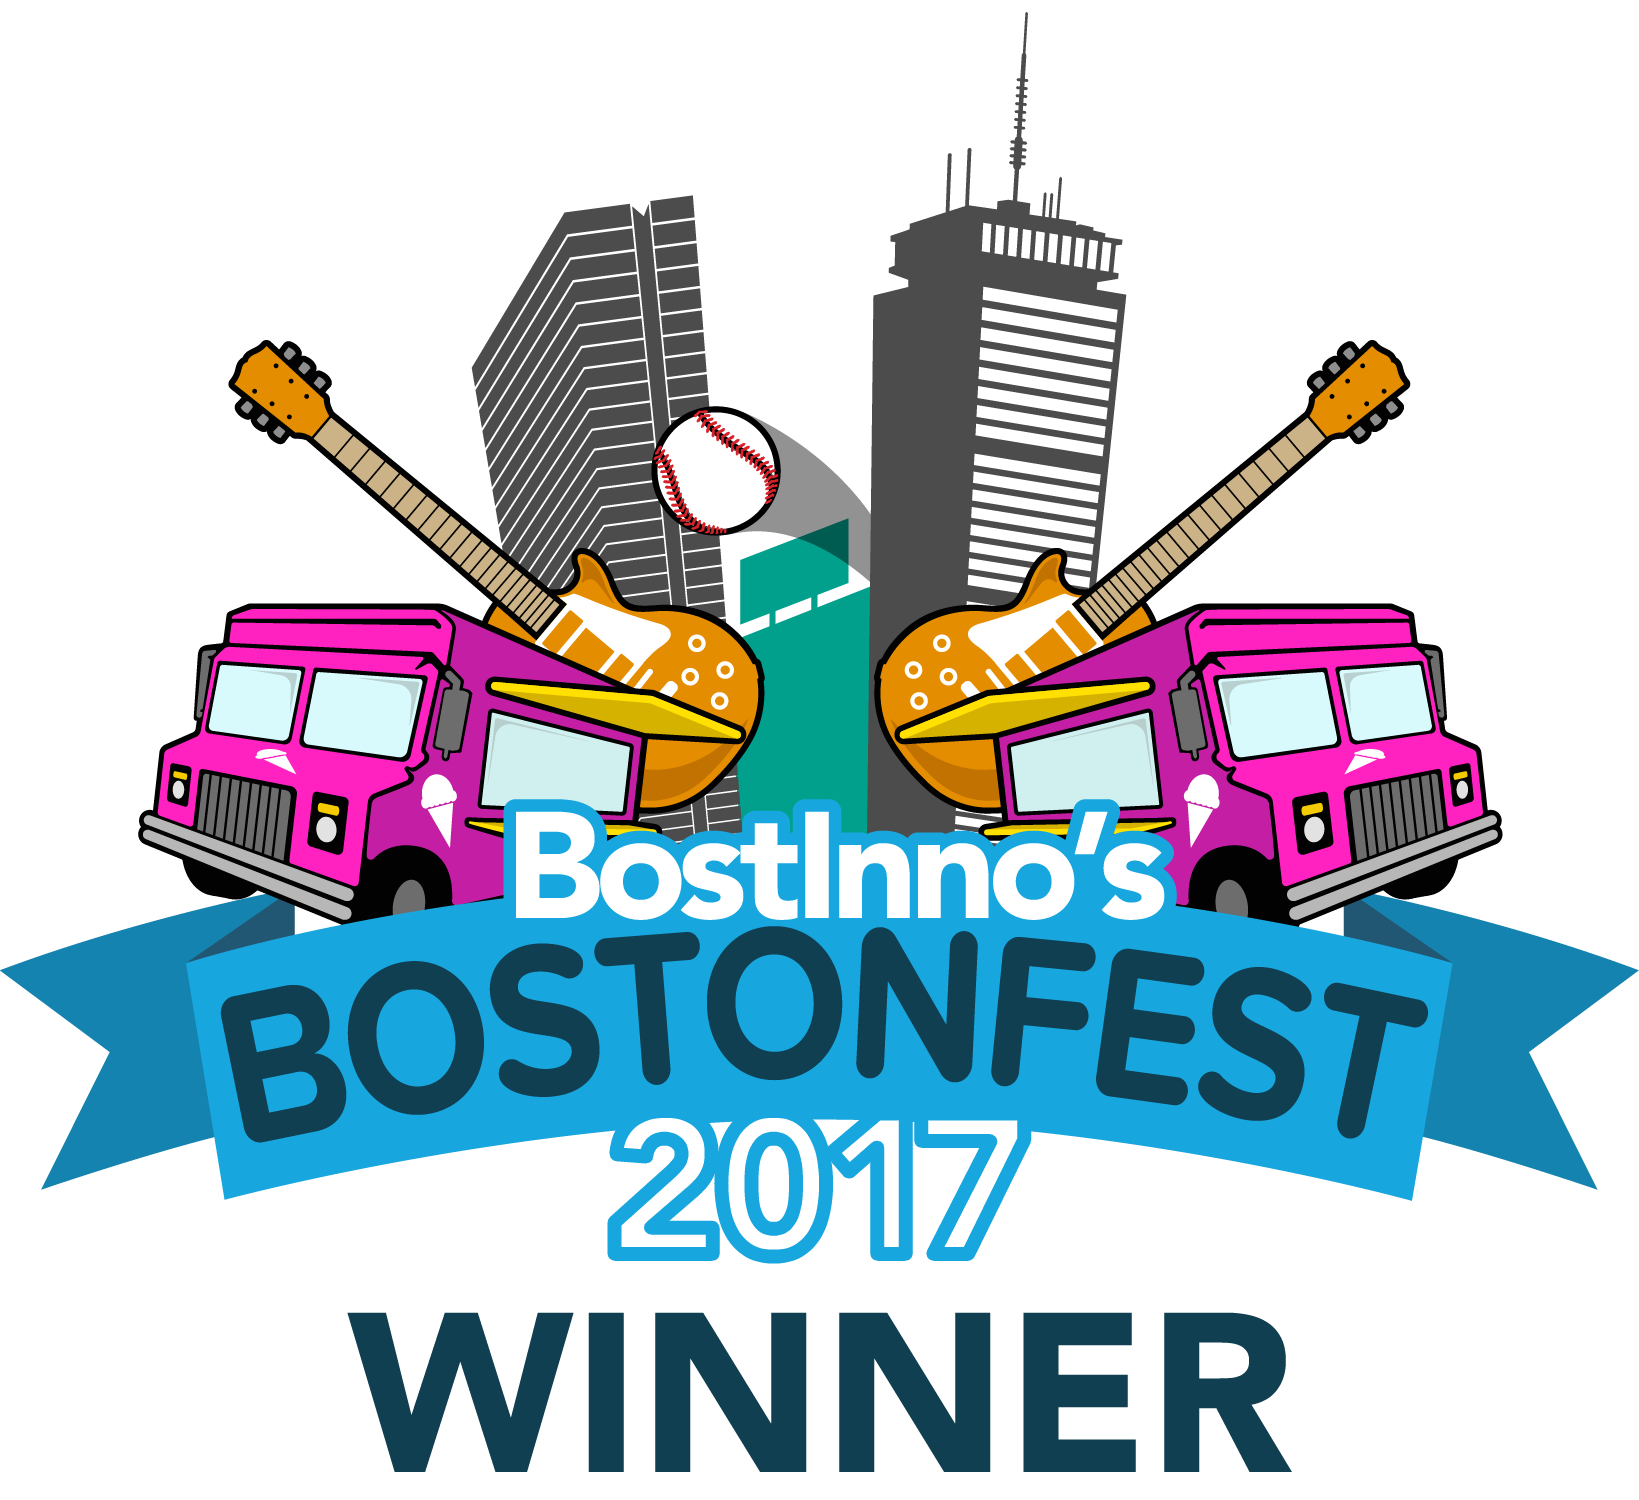 BostonFest-WINNER.png